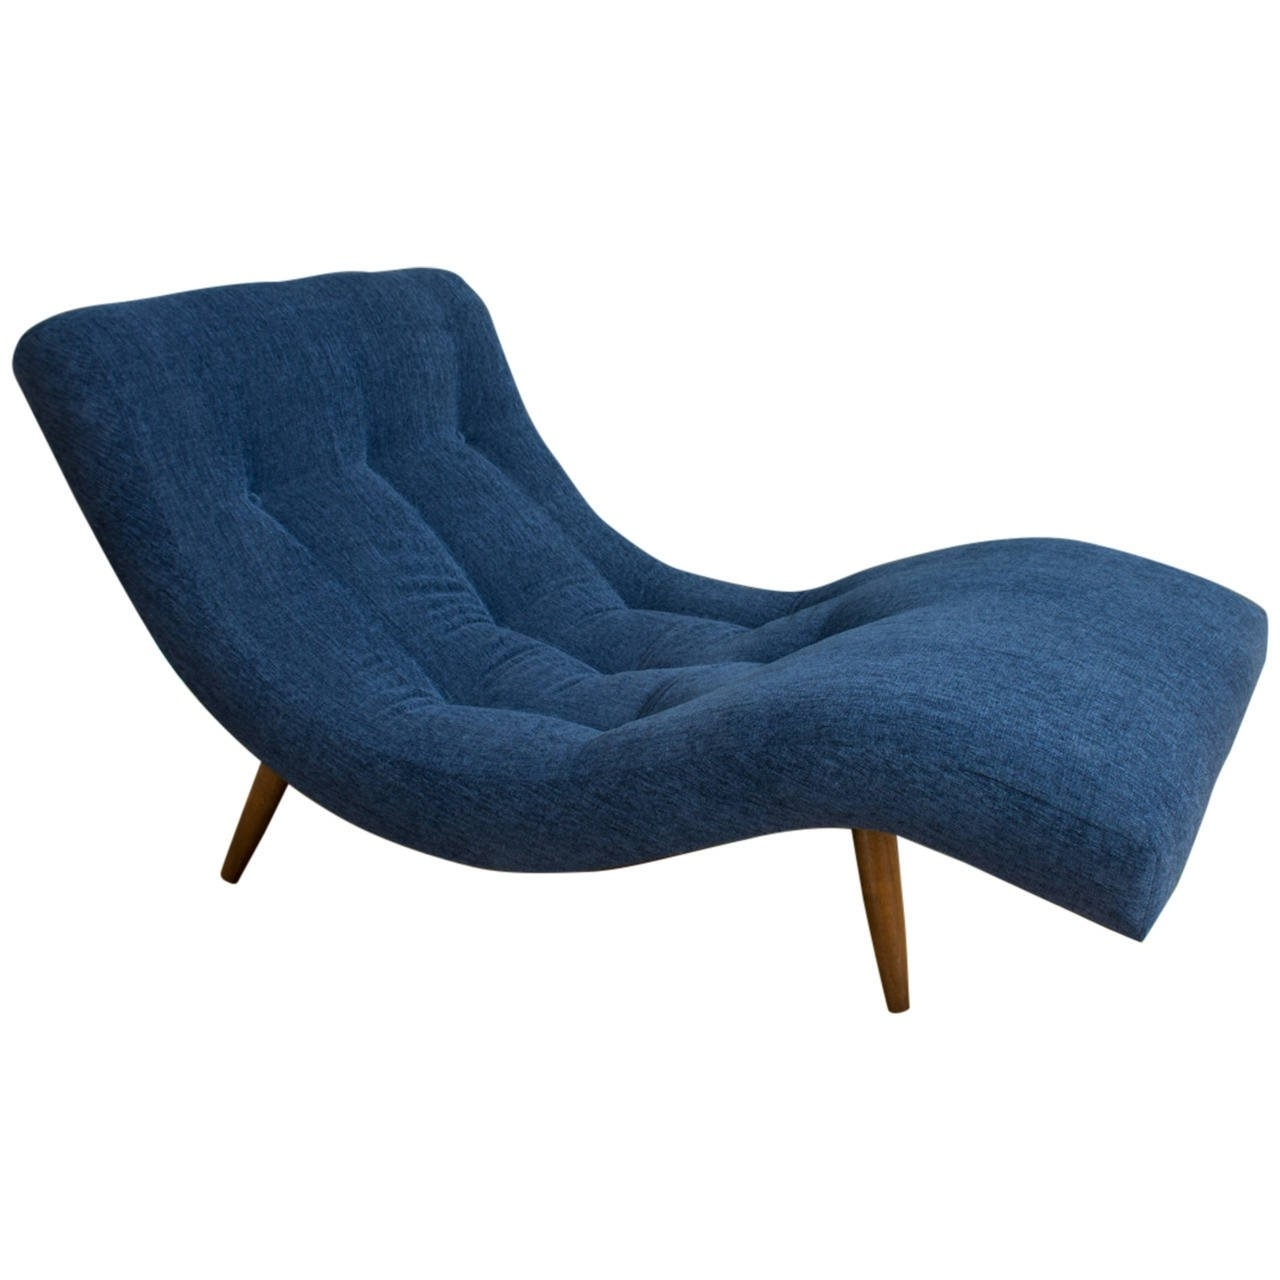 Antique Chaise Lounge Chair – Vintage Chaise Lounge Craigslist With Regard To Well Liked Mid Century Chaises (View 9 of 15)